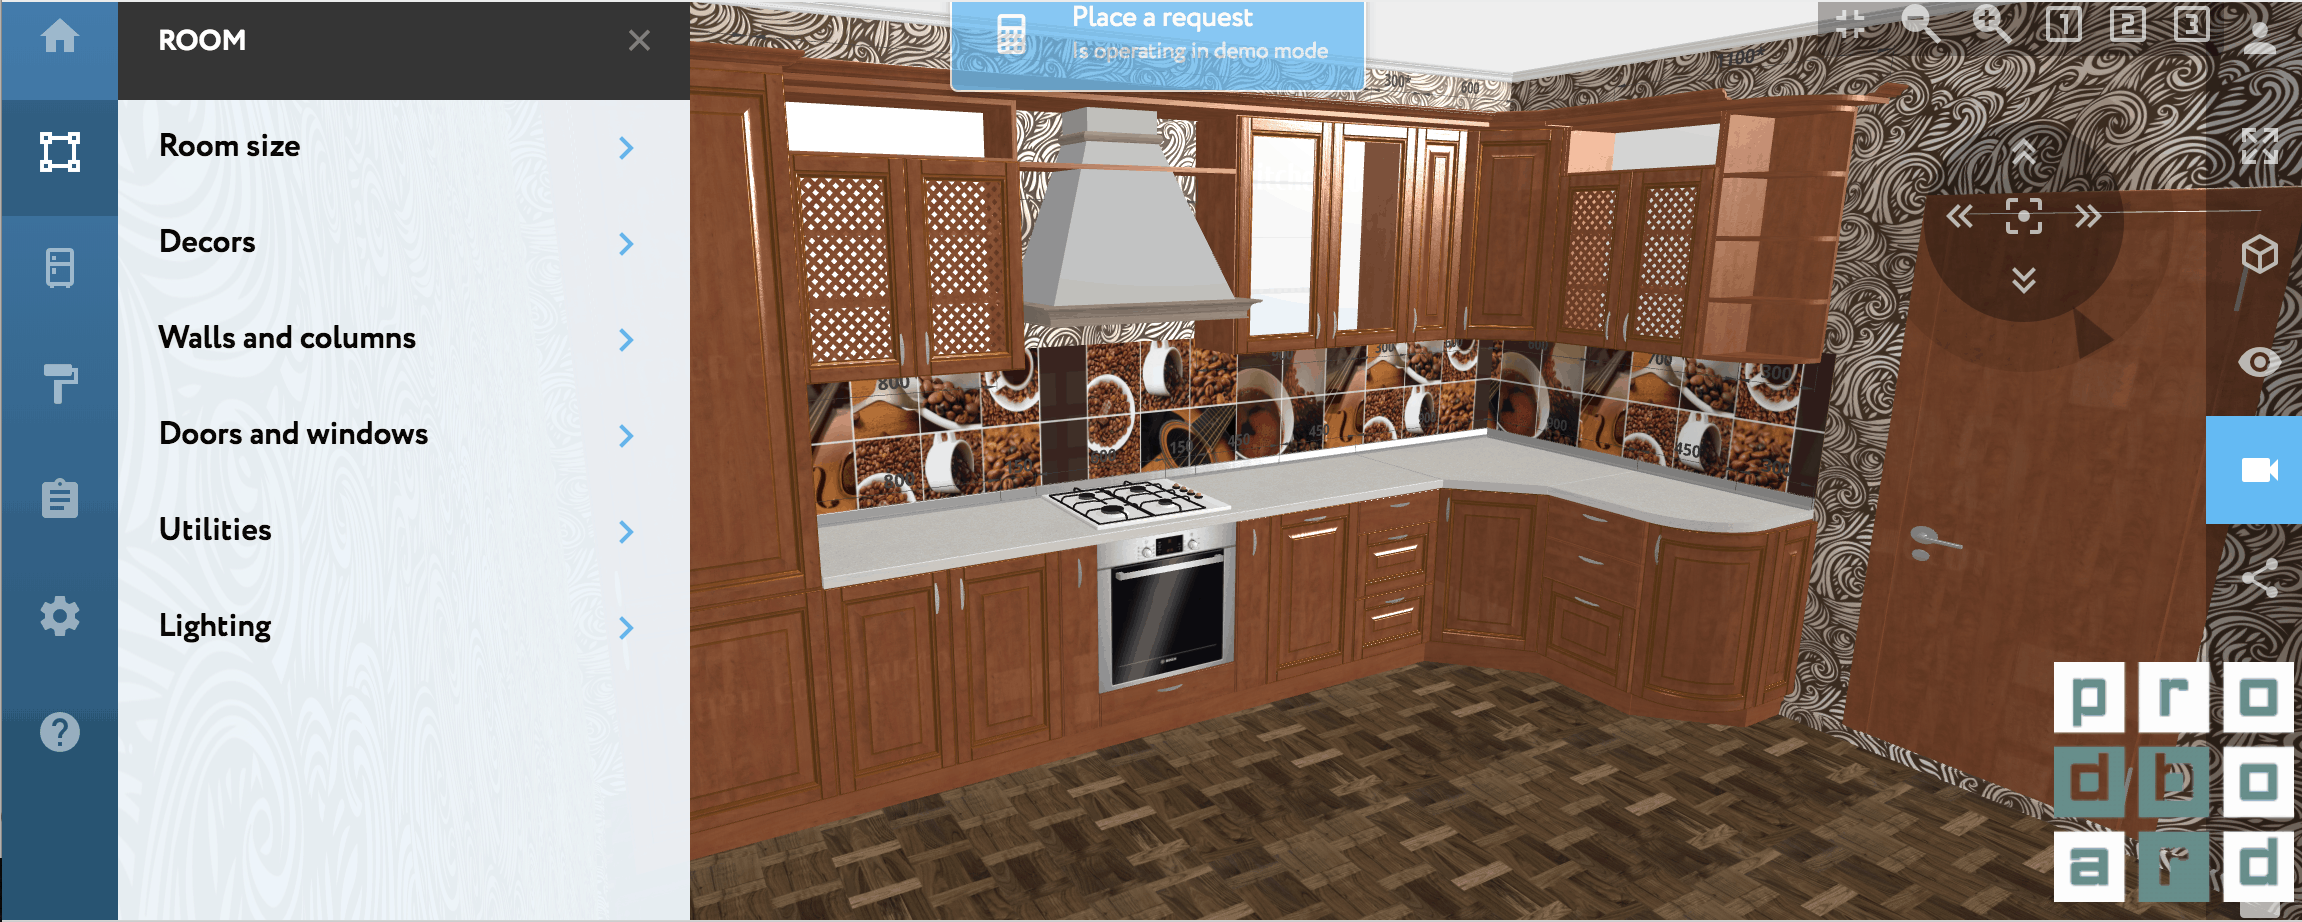 17 Best Online Kitchen Design Software Options In 2019 Free Paid